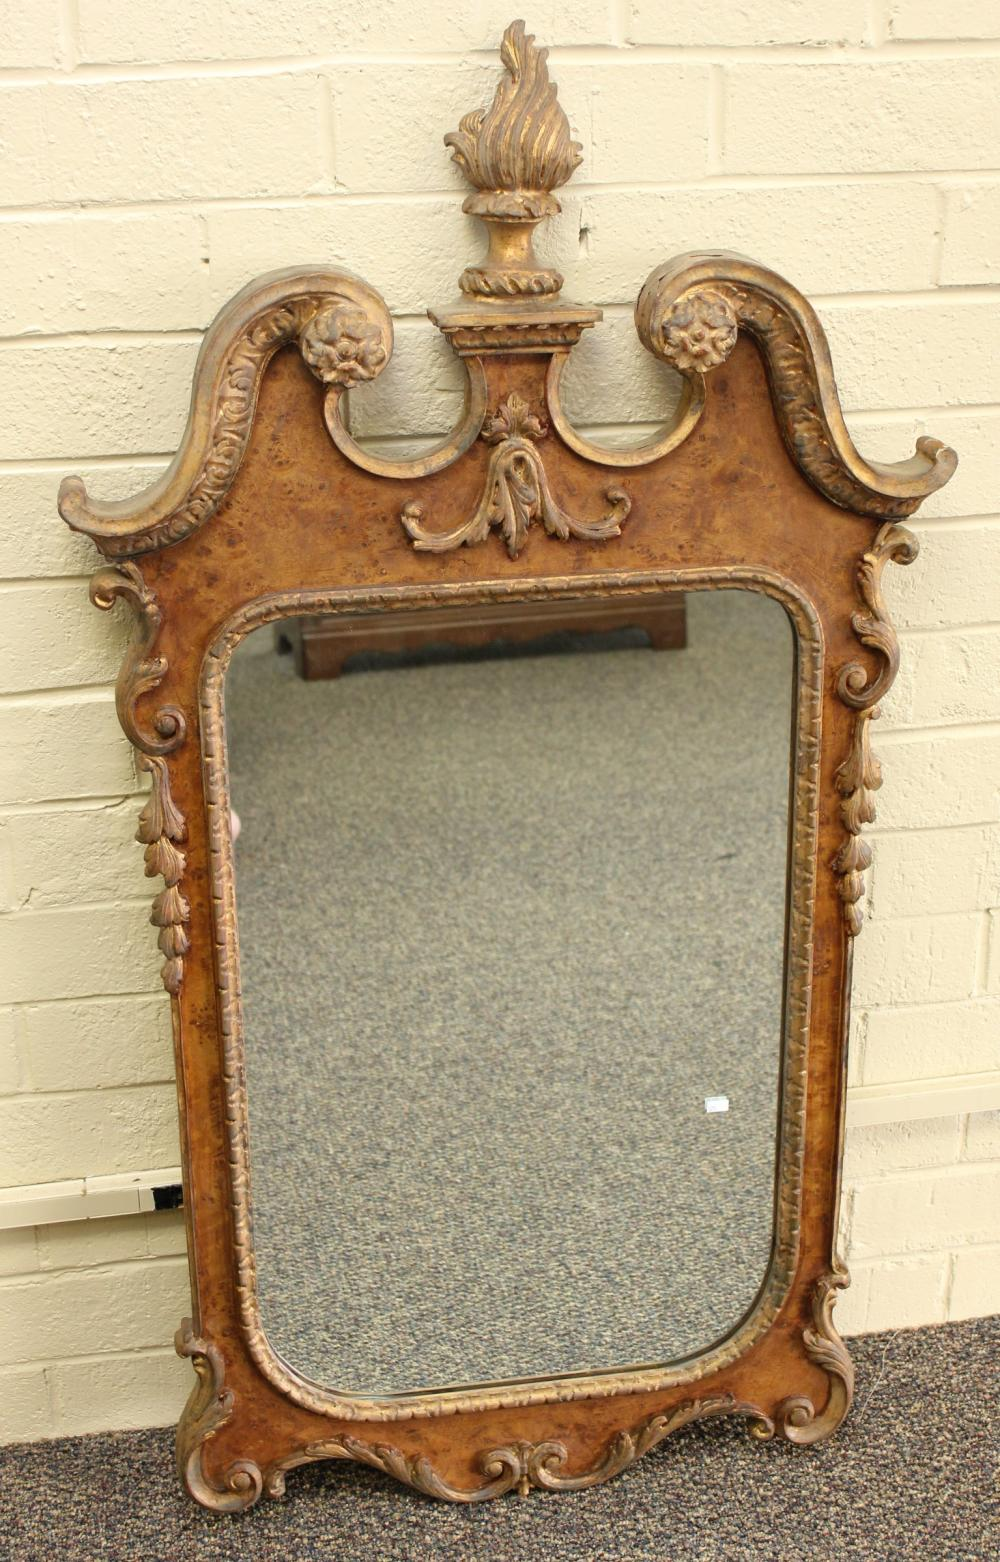 Antique Burl Front Mirror with Flame Carved Finial